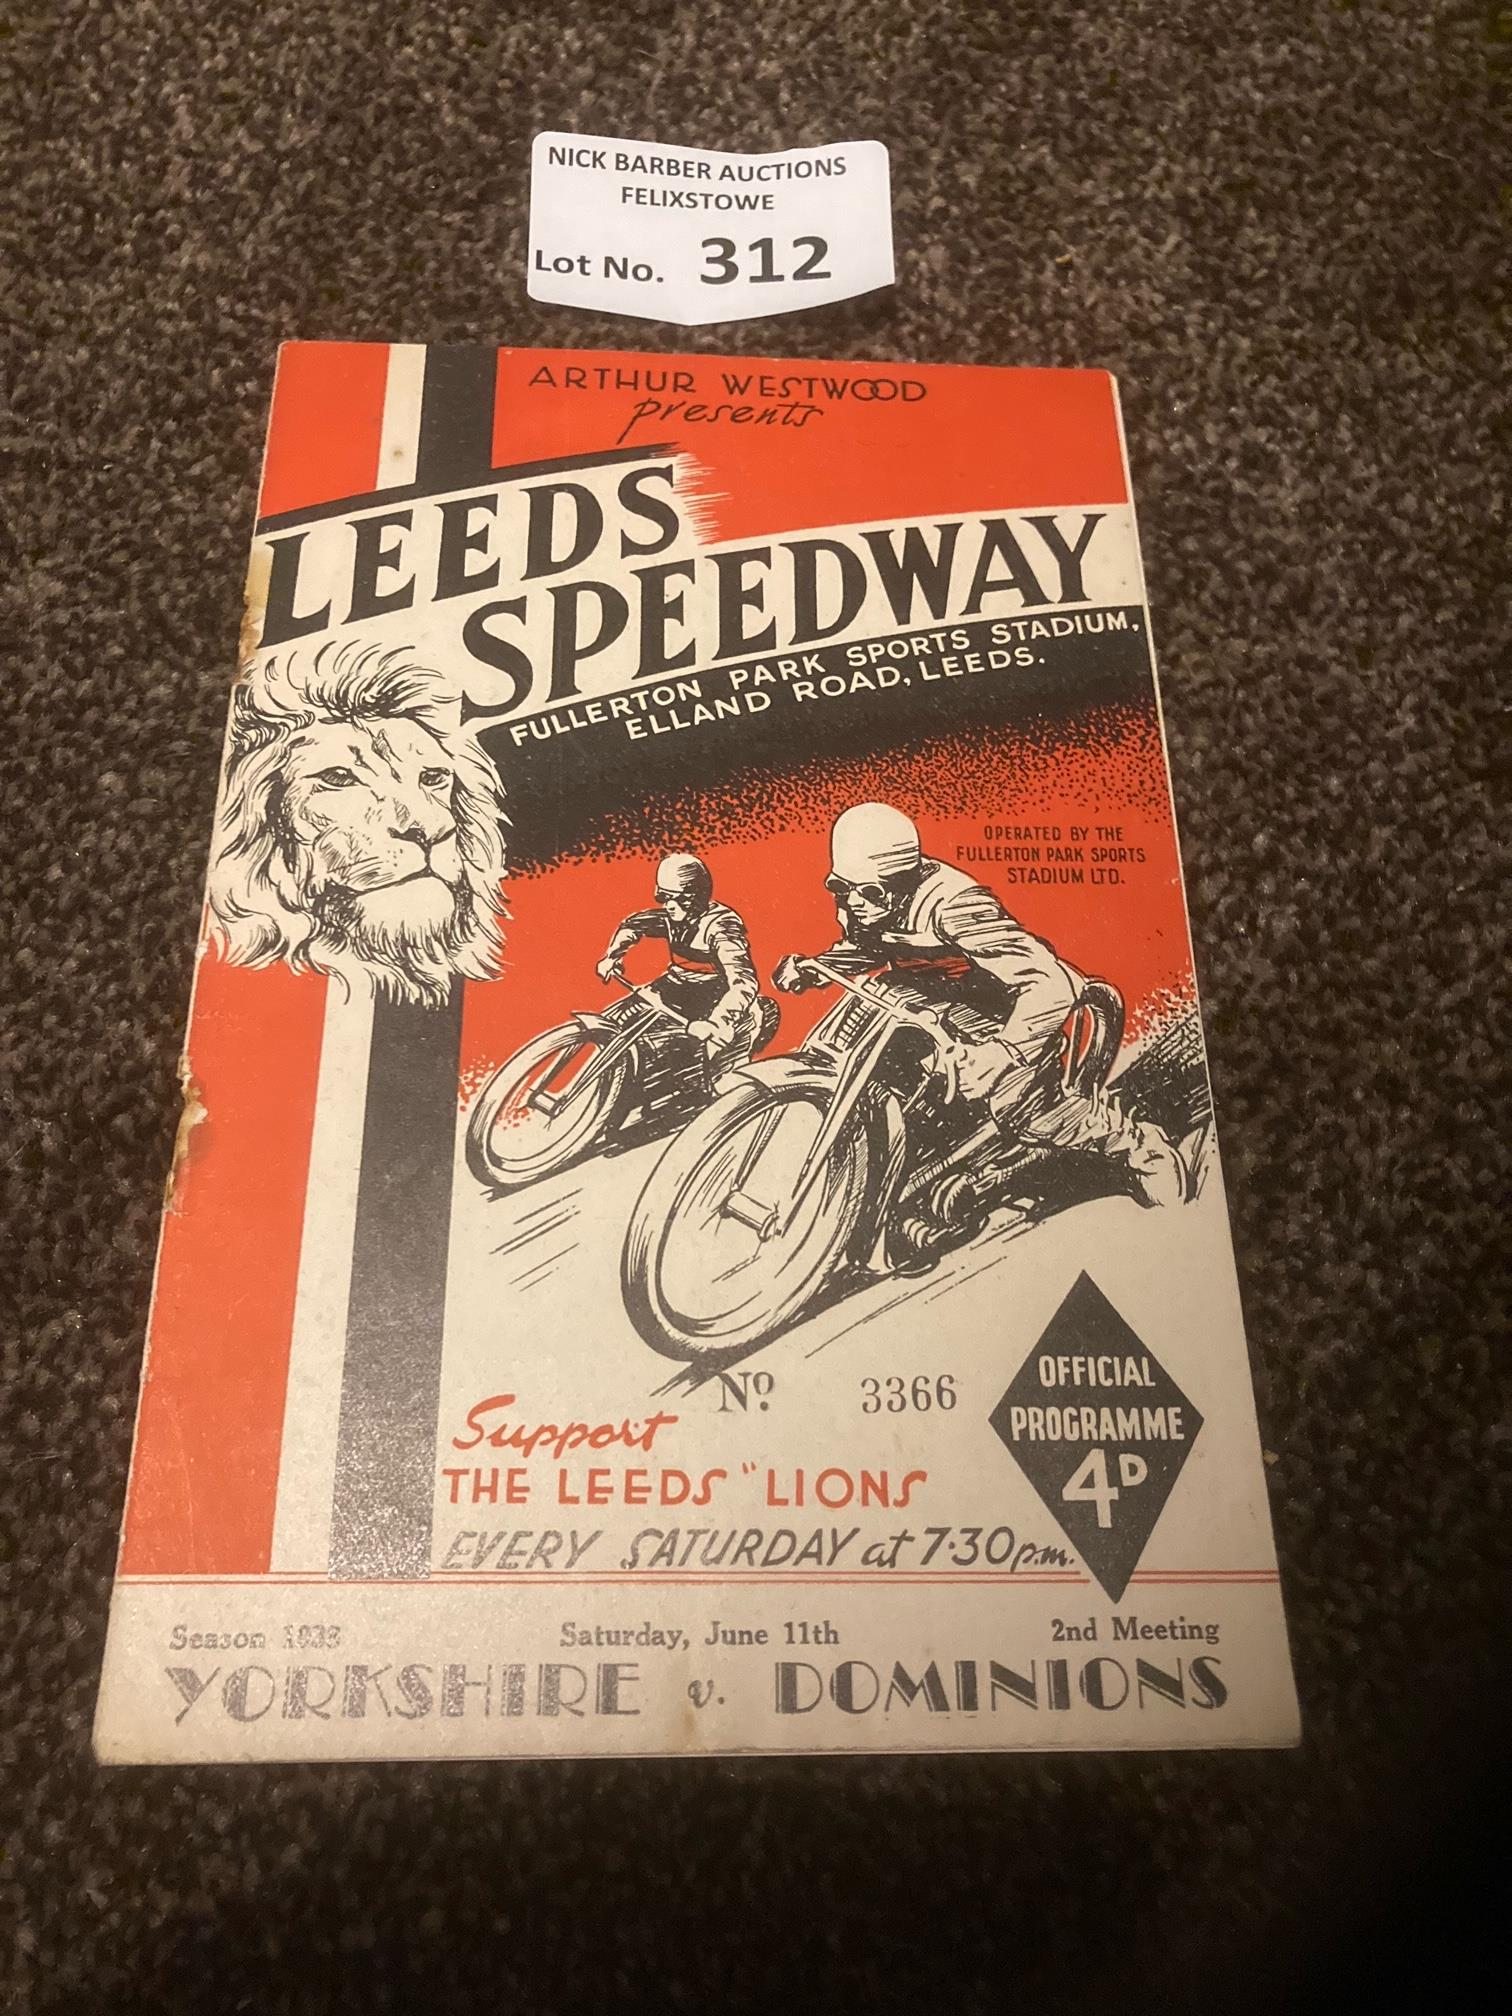 Speedway : Leeds - Yorkshire v Dominions programme